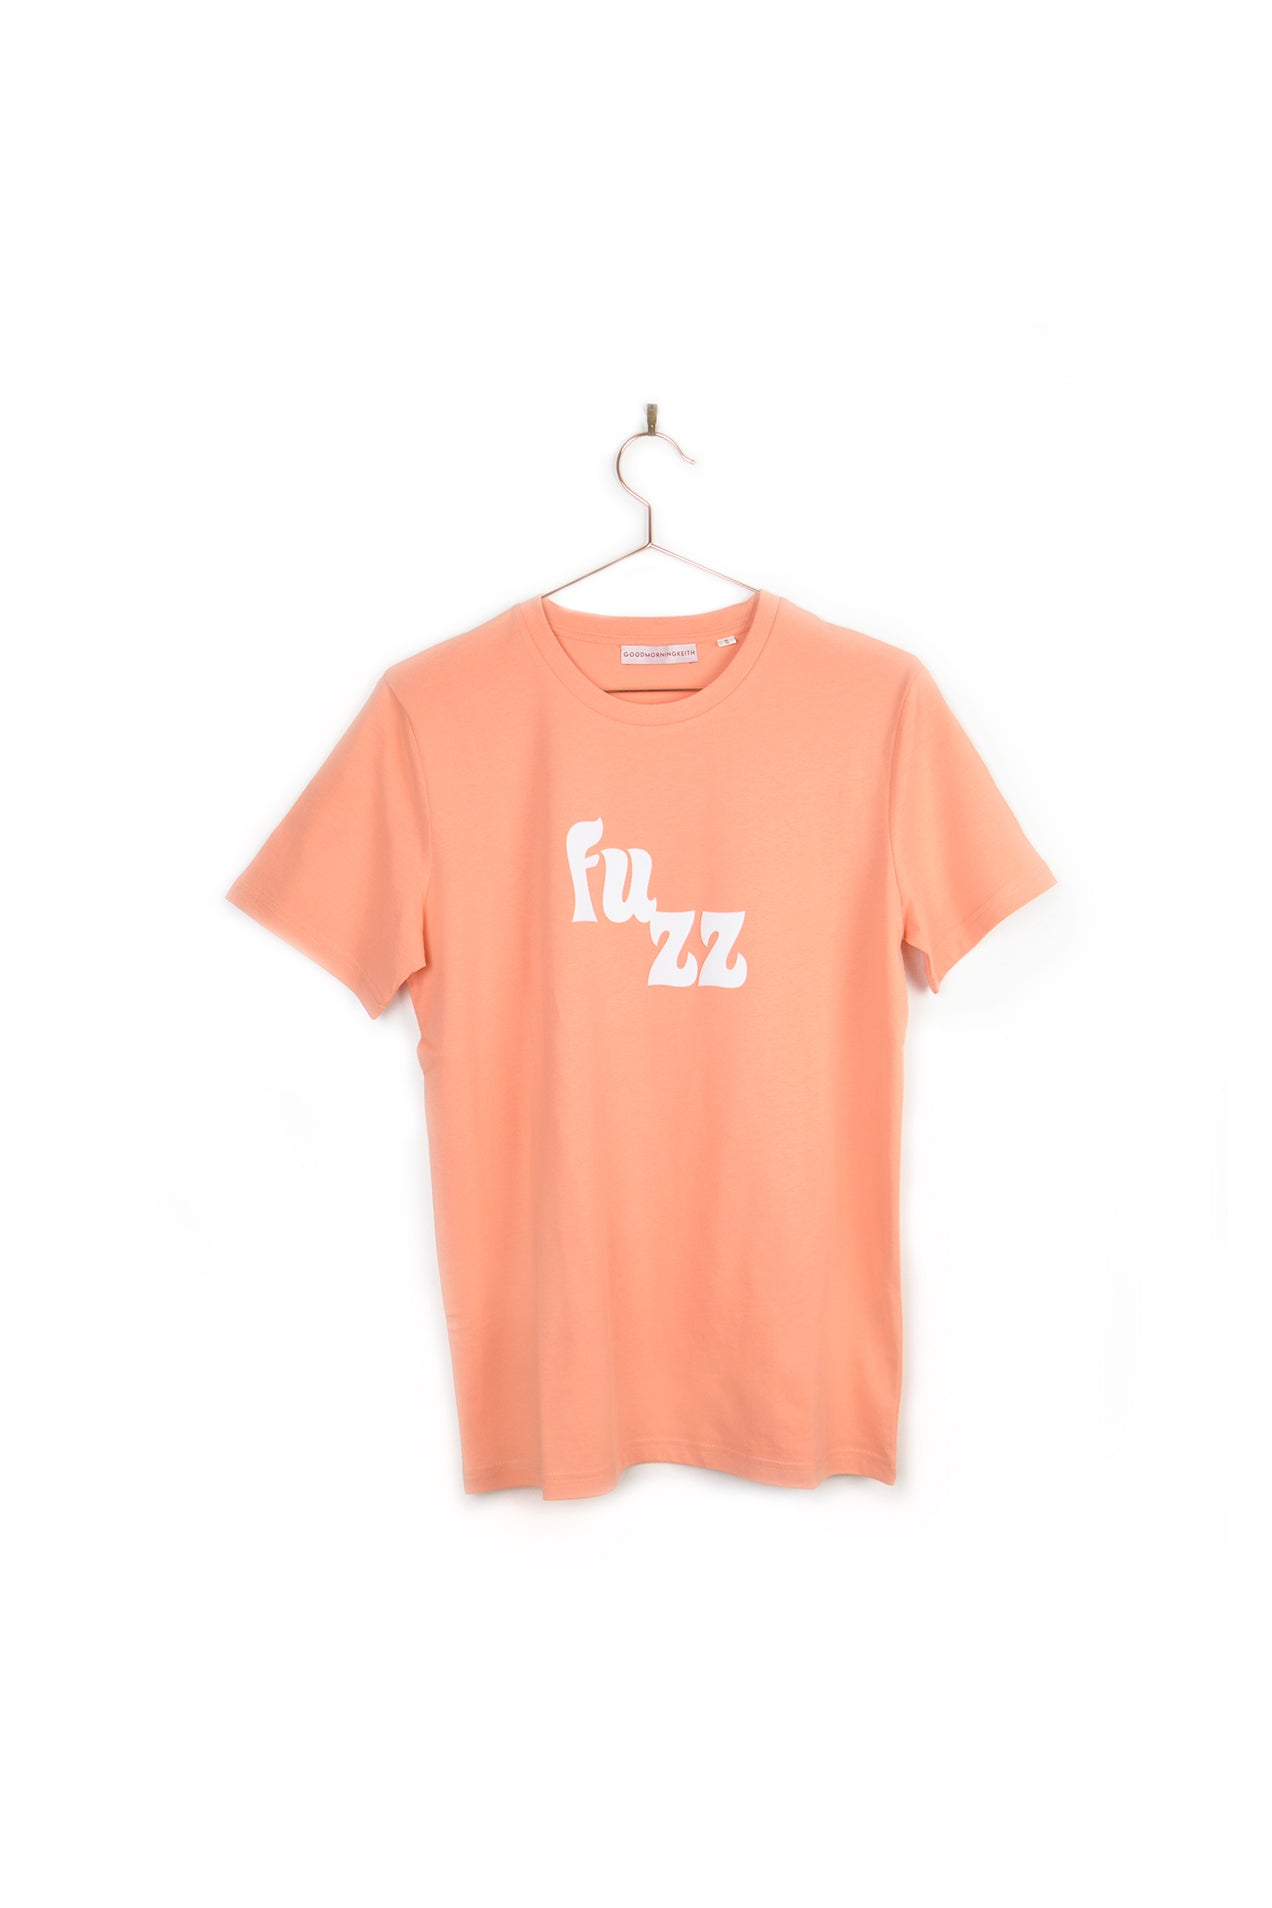 T-shirt vintage unisex Good Morning Keith Sunset Orange velour imprimé Fuzz